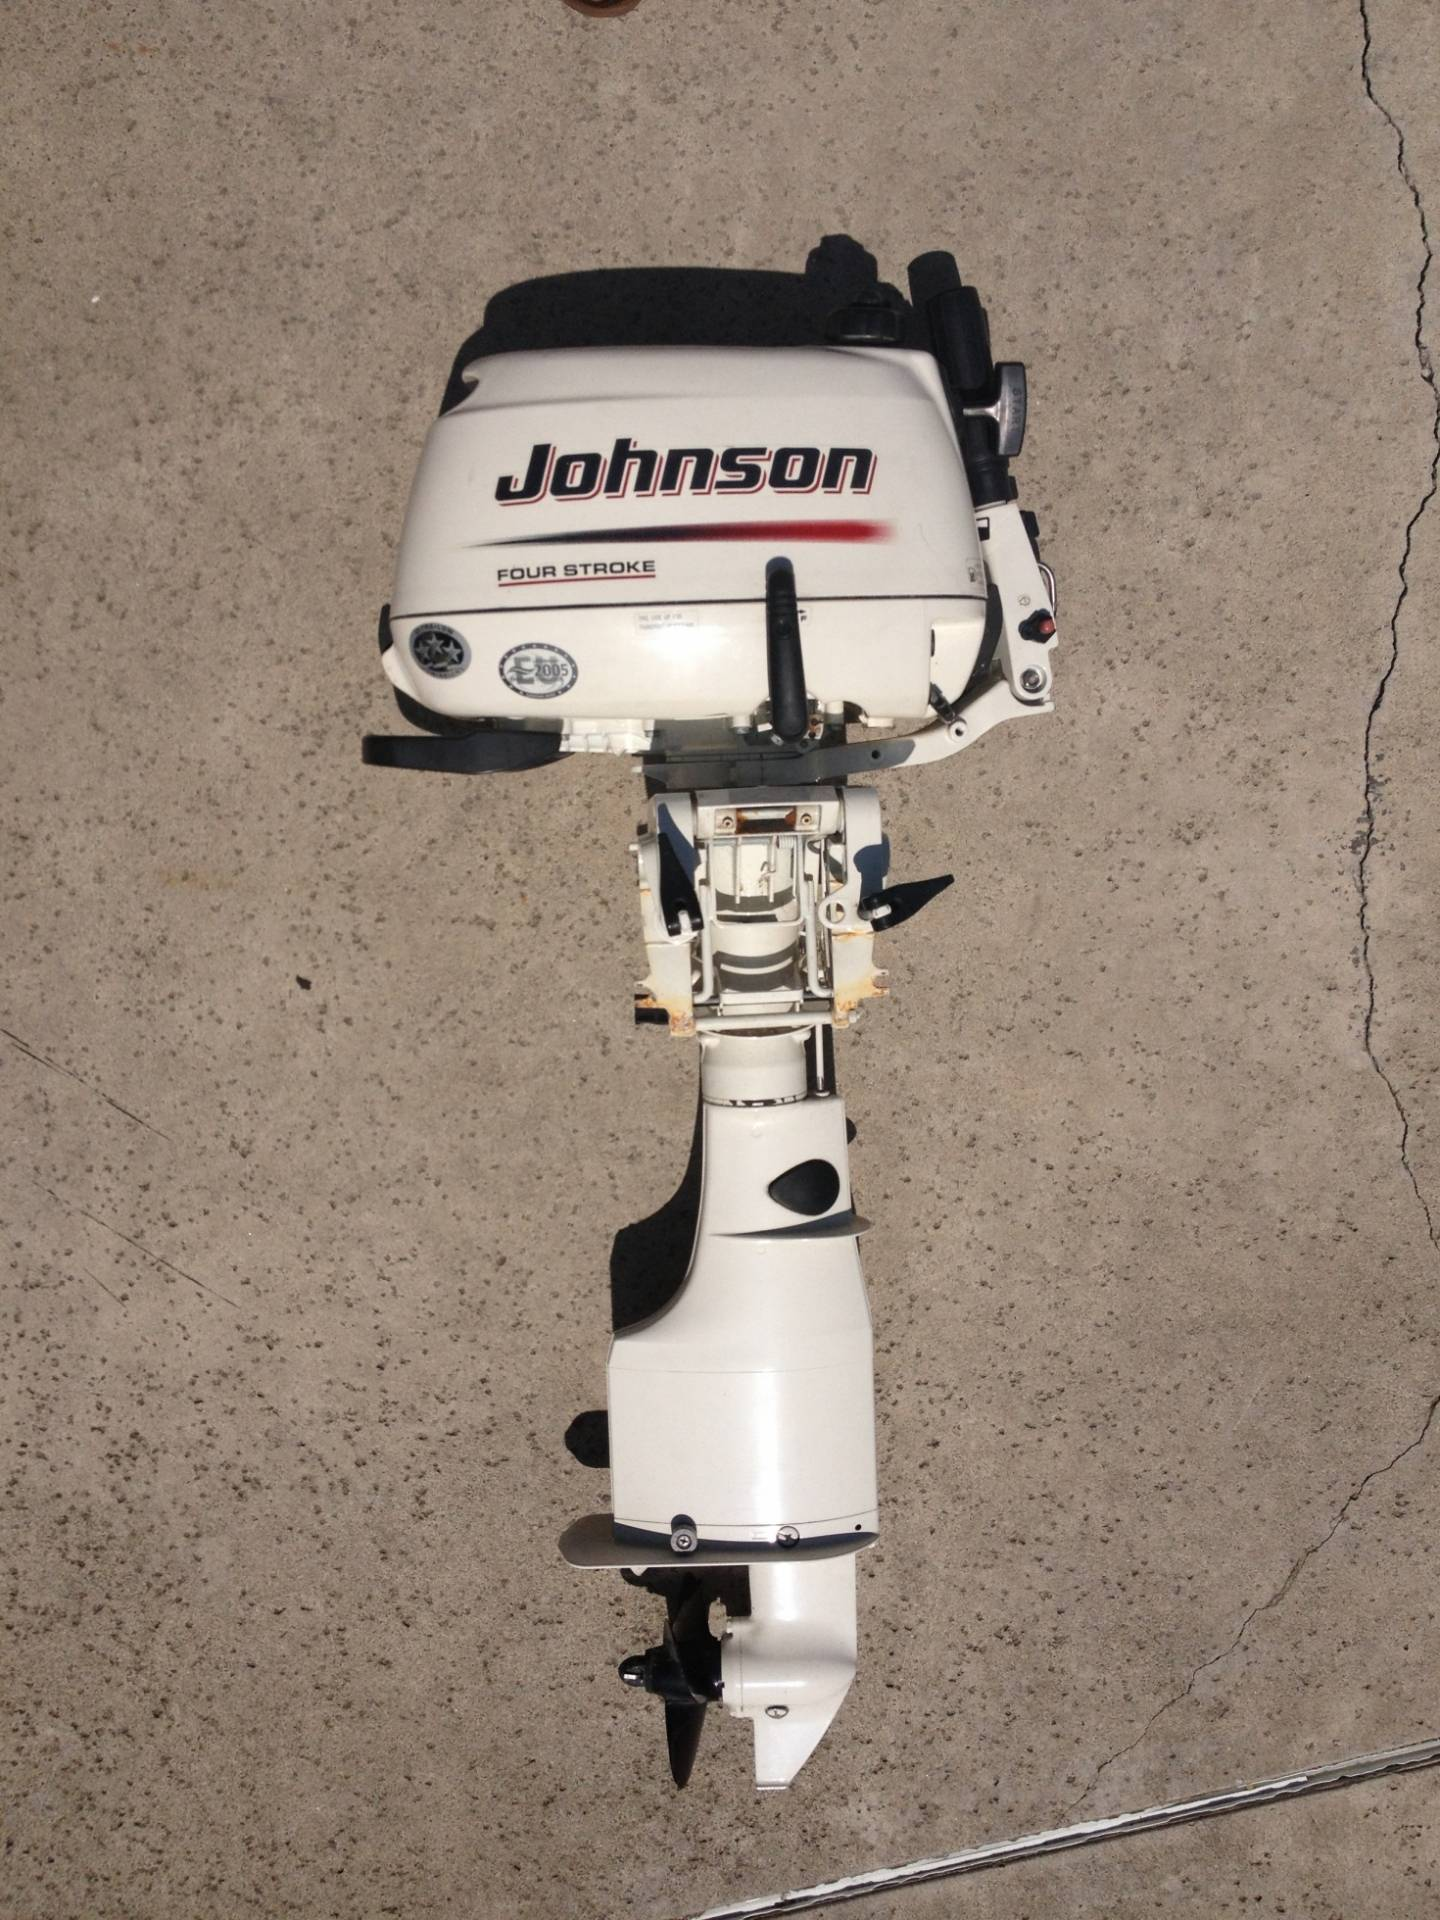 For sale johnson 4hp outboard motor bloodydecks for New johnson boat motors for sale